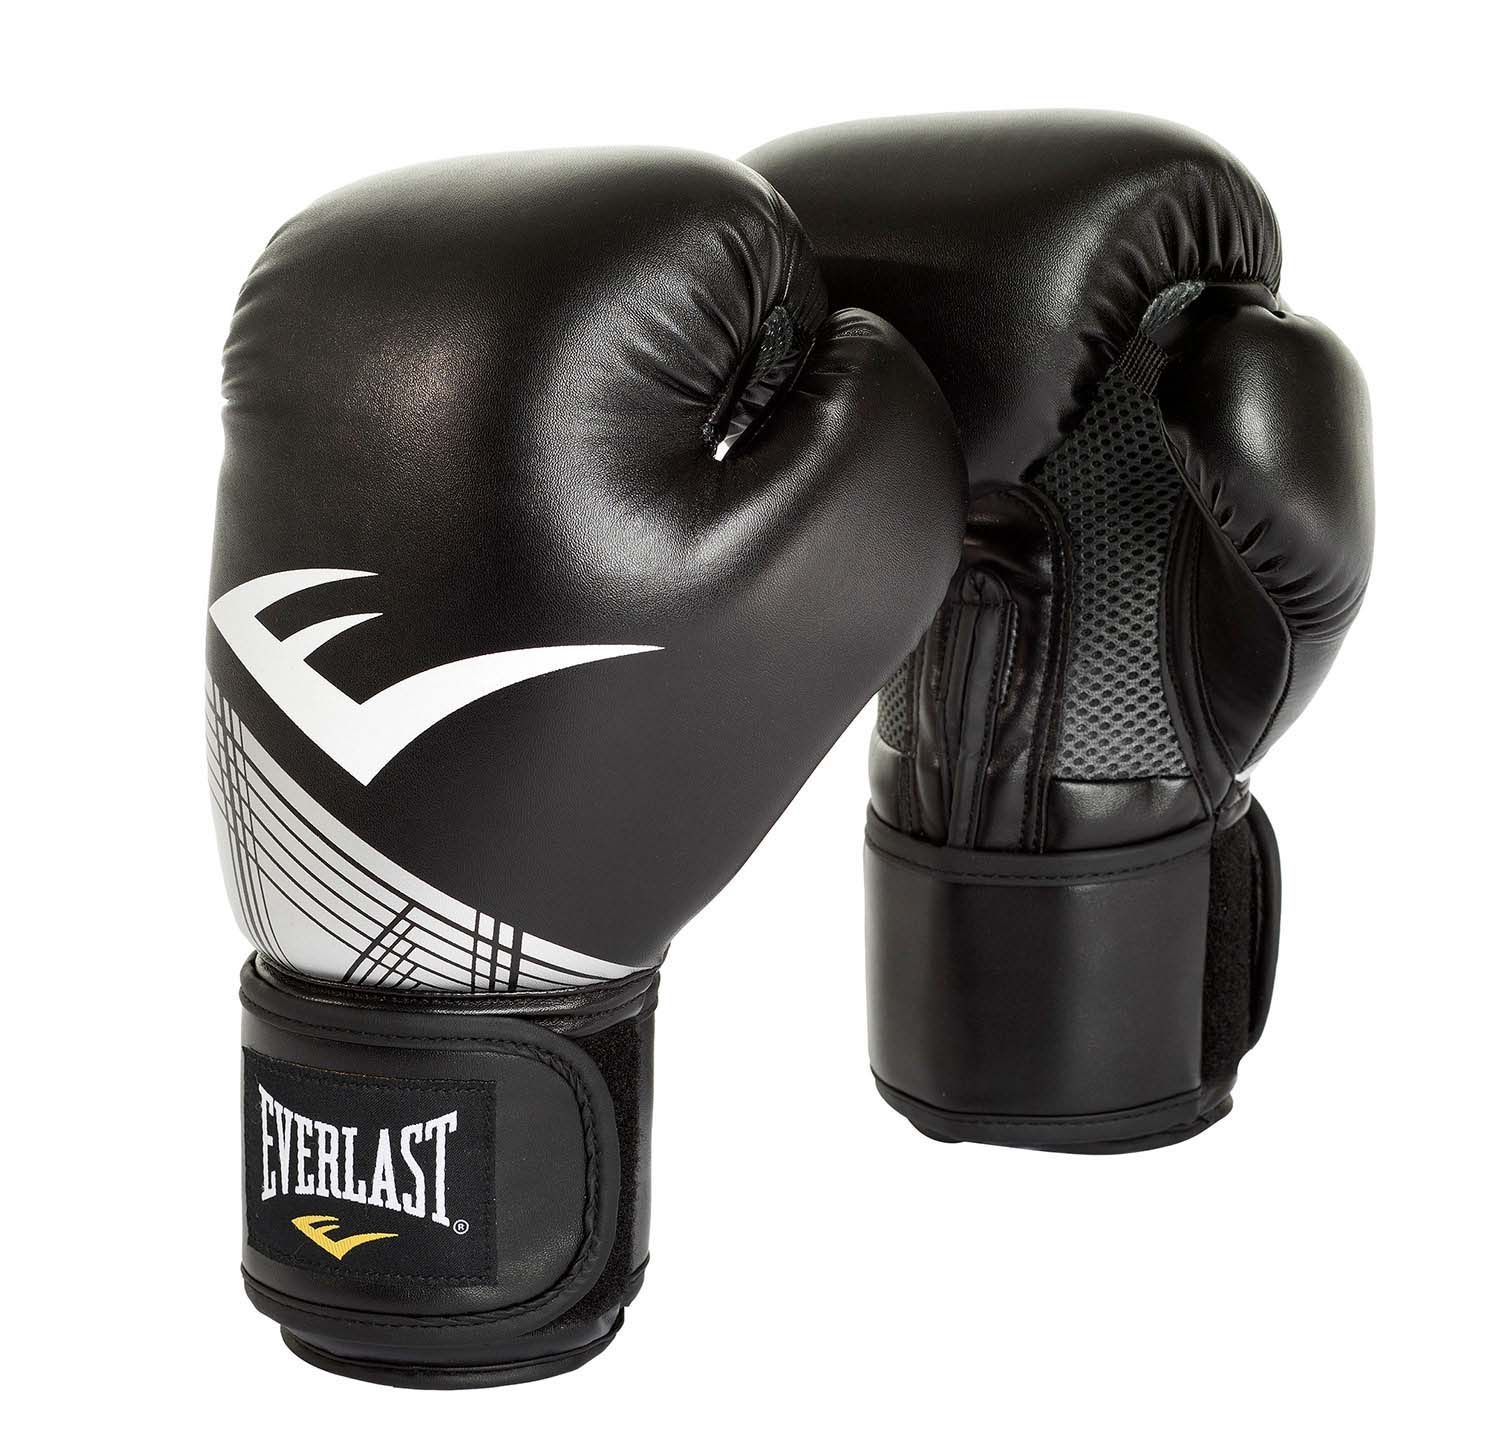 PRO STYLE ADVANCE TRAINING GLOVE  8oz